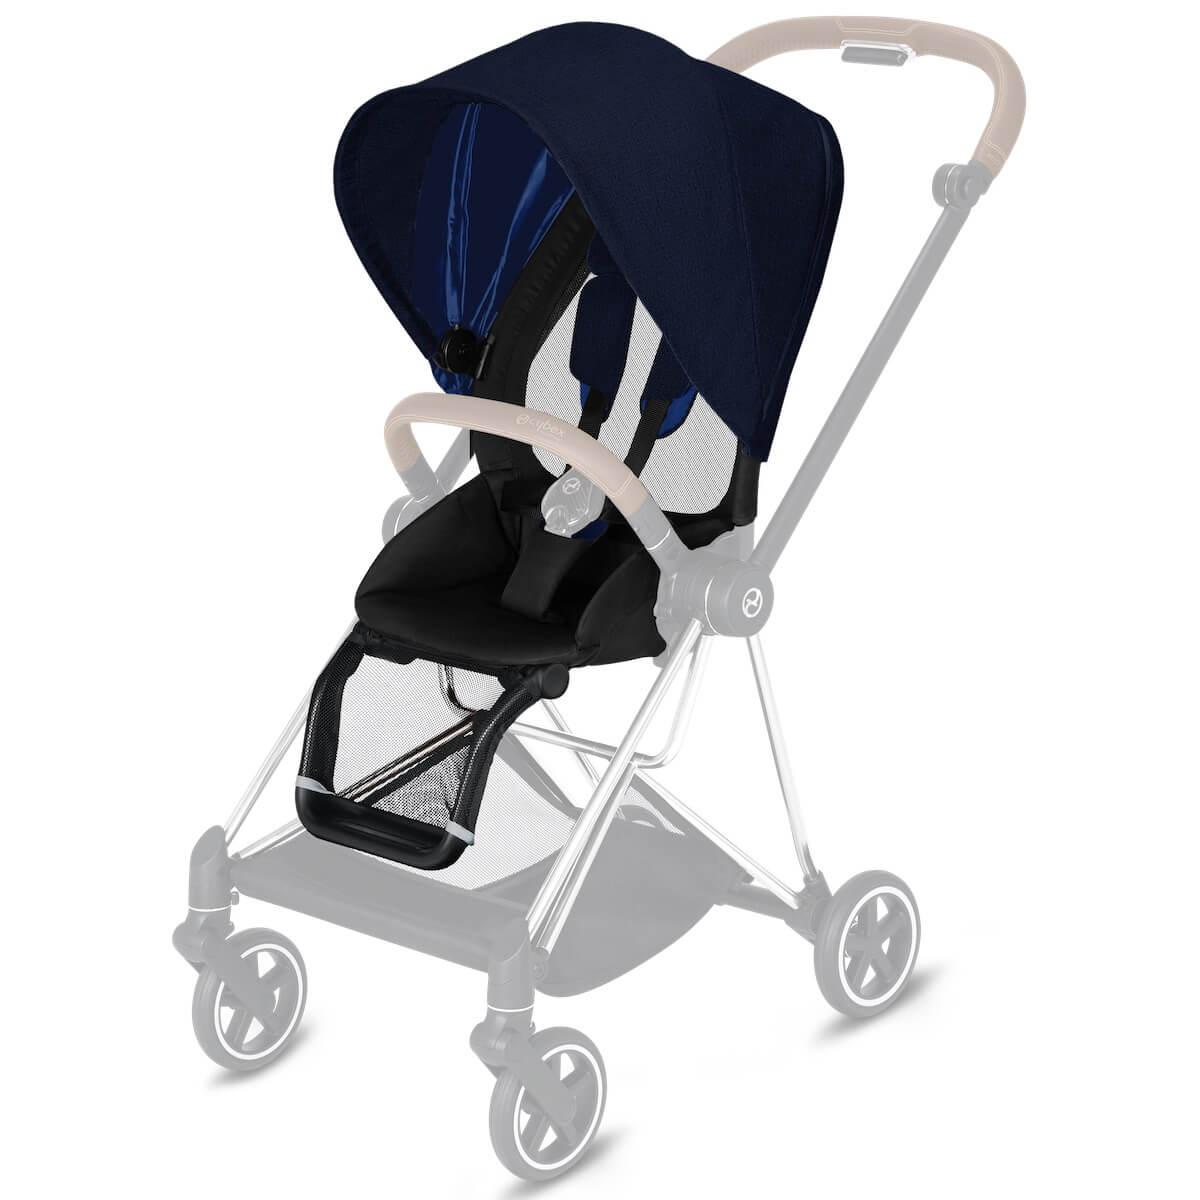 Assise-habillage poussette MIOS Cybex Plus Midnight Blue Plus-navy blue